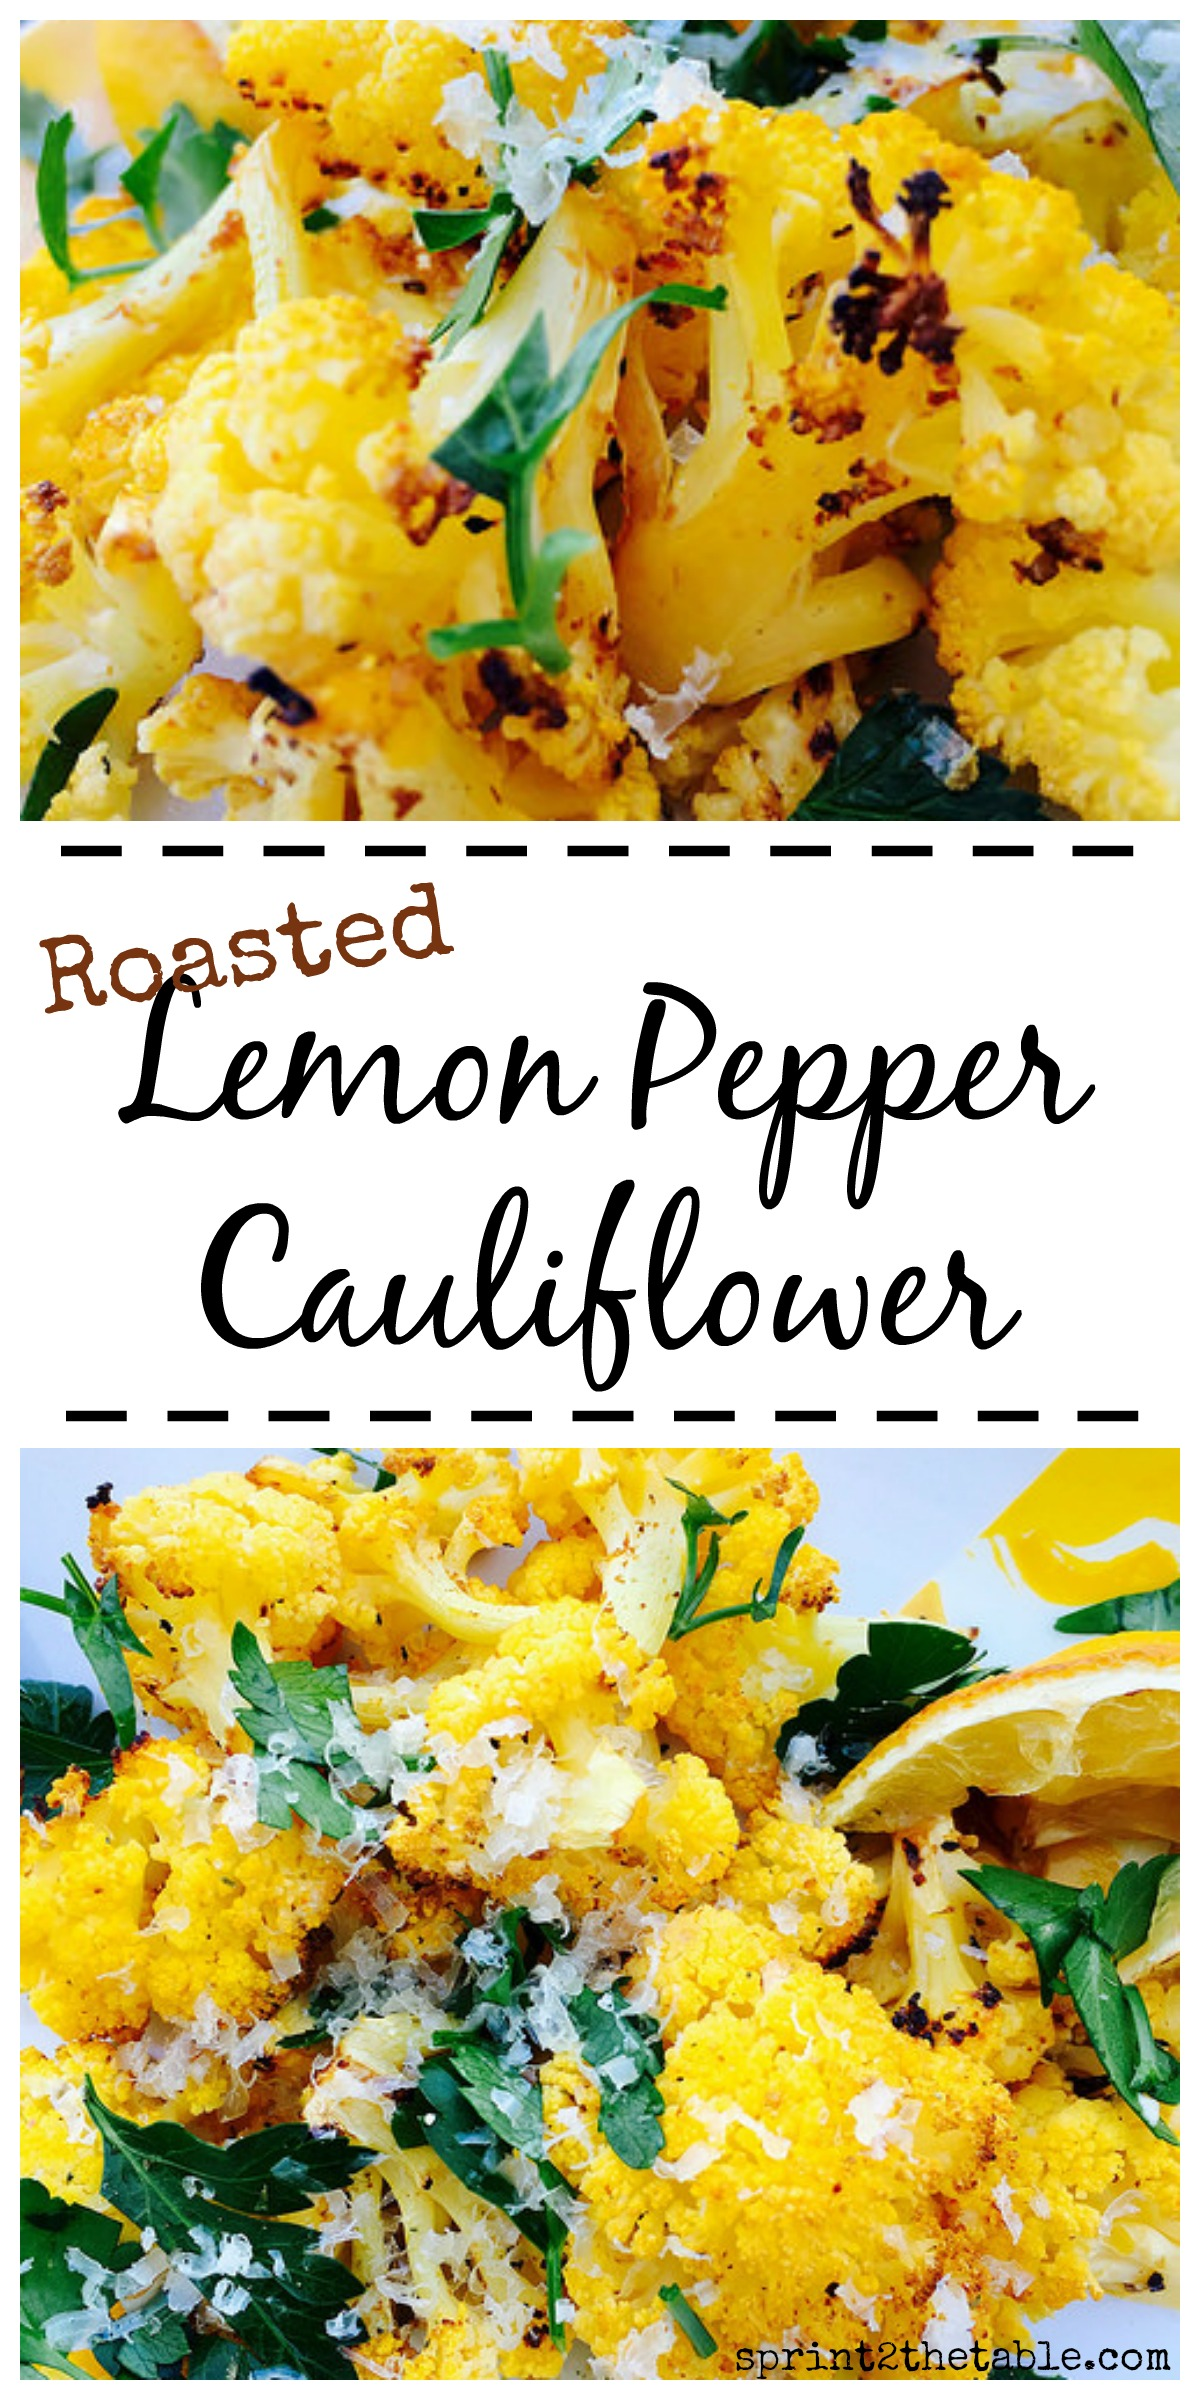 Did you know yellow cauliflower has more beta carotene than the regular white veggie? Try it in this Lemon Pepper Roasted Cauliflower dish!